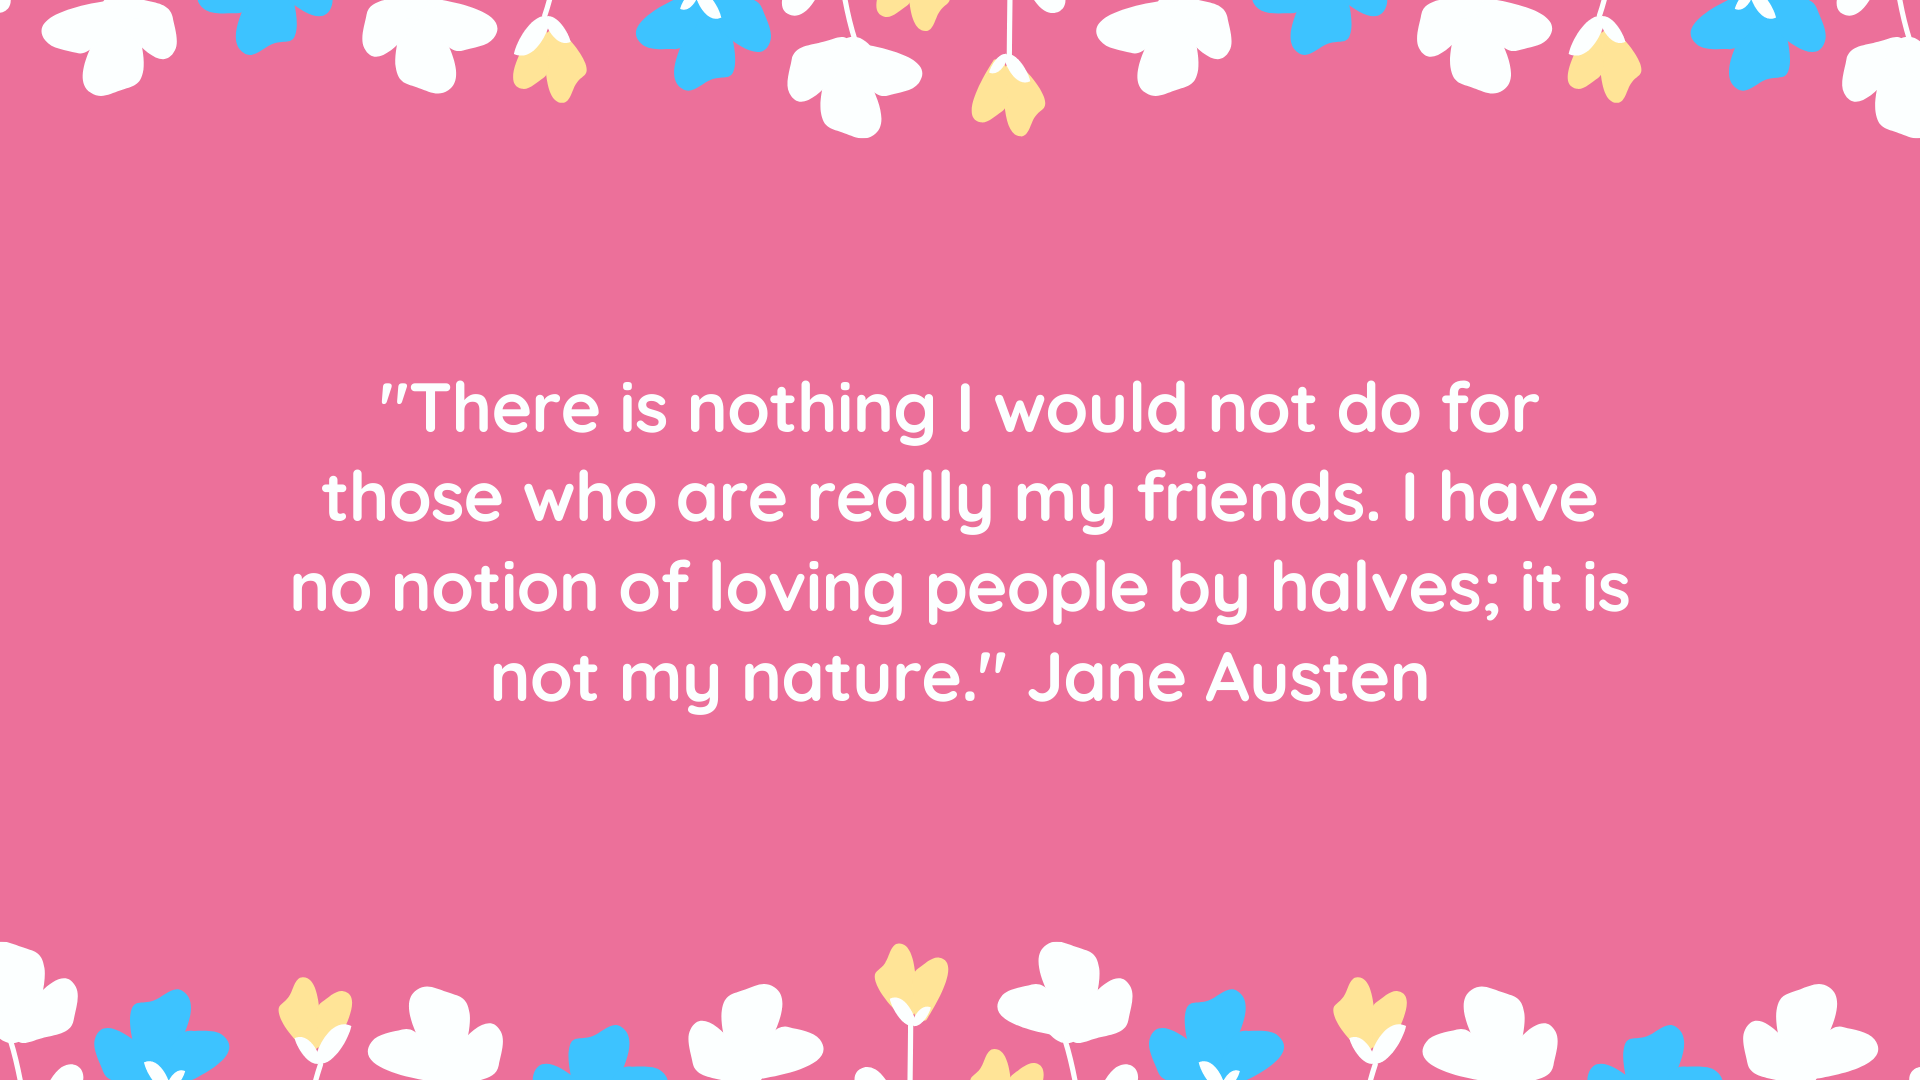 """There is nothing I would not do for those who are really my friends. I have no notion of loving people by halves; it is not my nature."" Jane Austen"